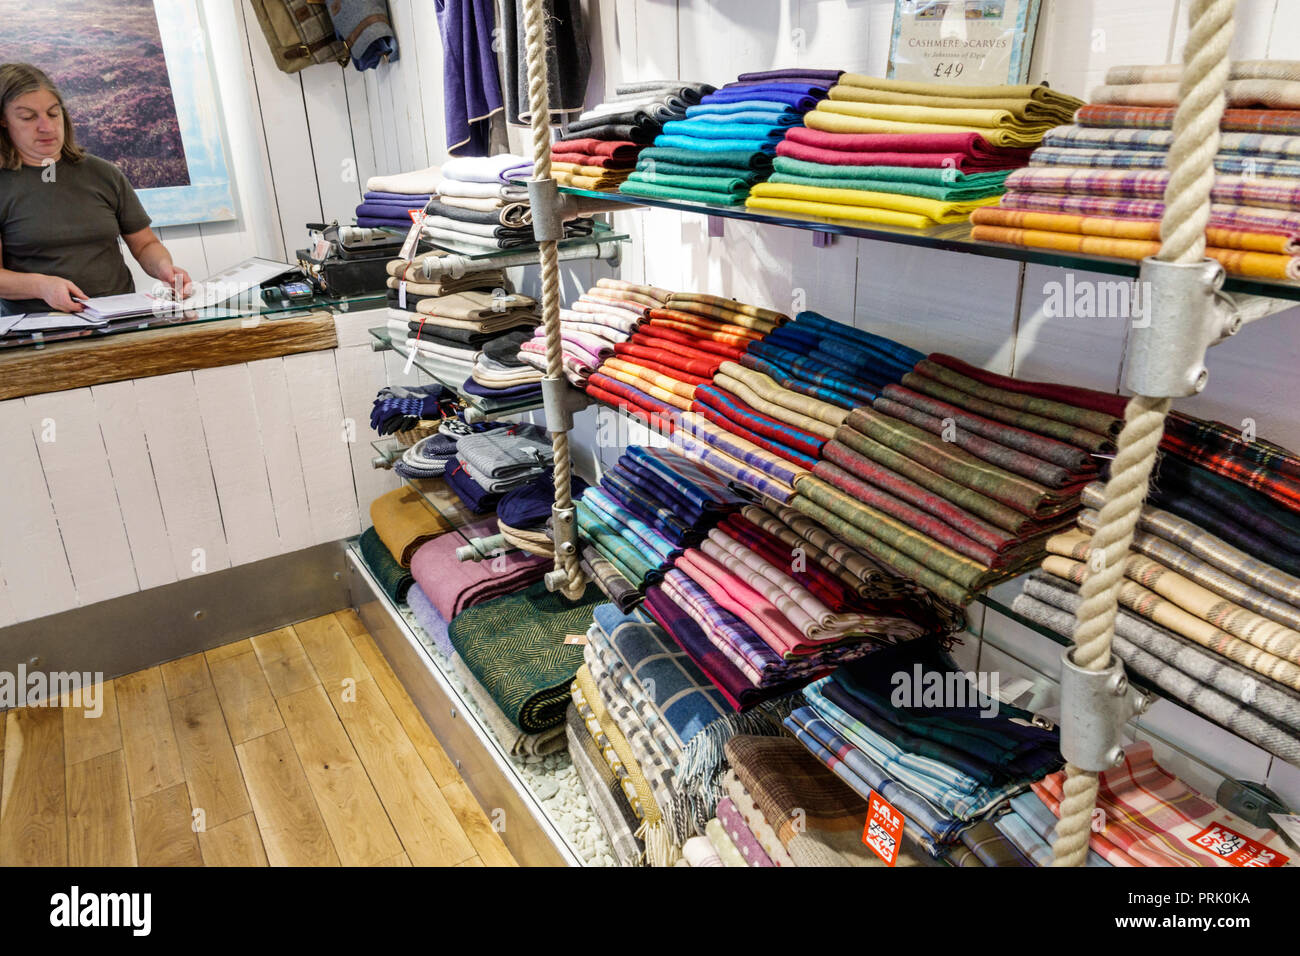 London England United Kingdom Great Britain Bloomsbury Highland Store Scottish Shop shopping lambswool cashmere scarf scarves display sale woman sales - Stock Image